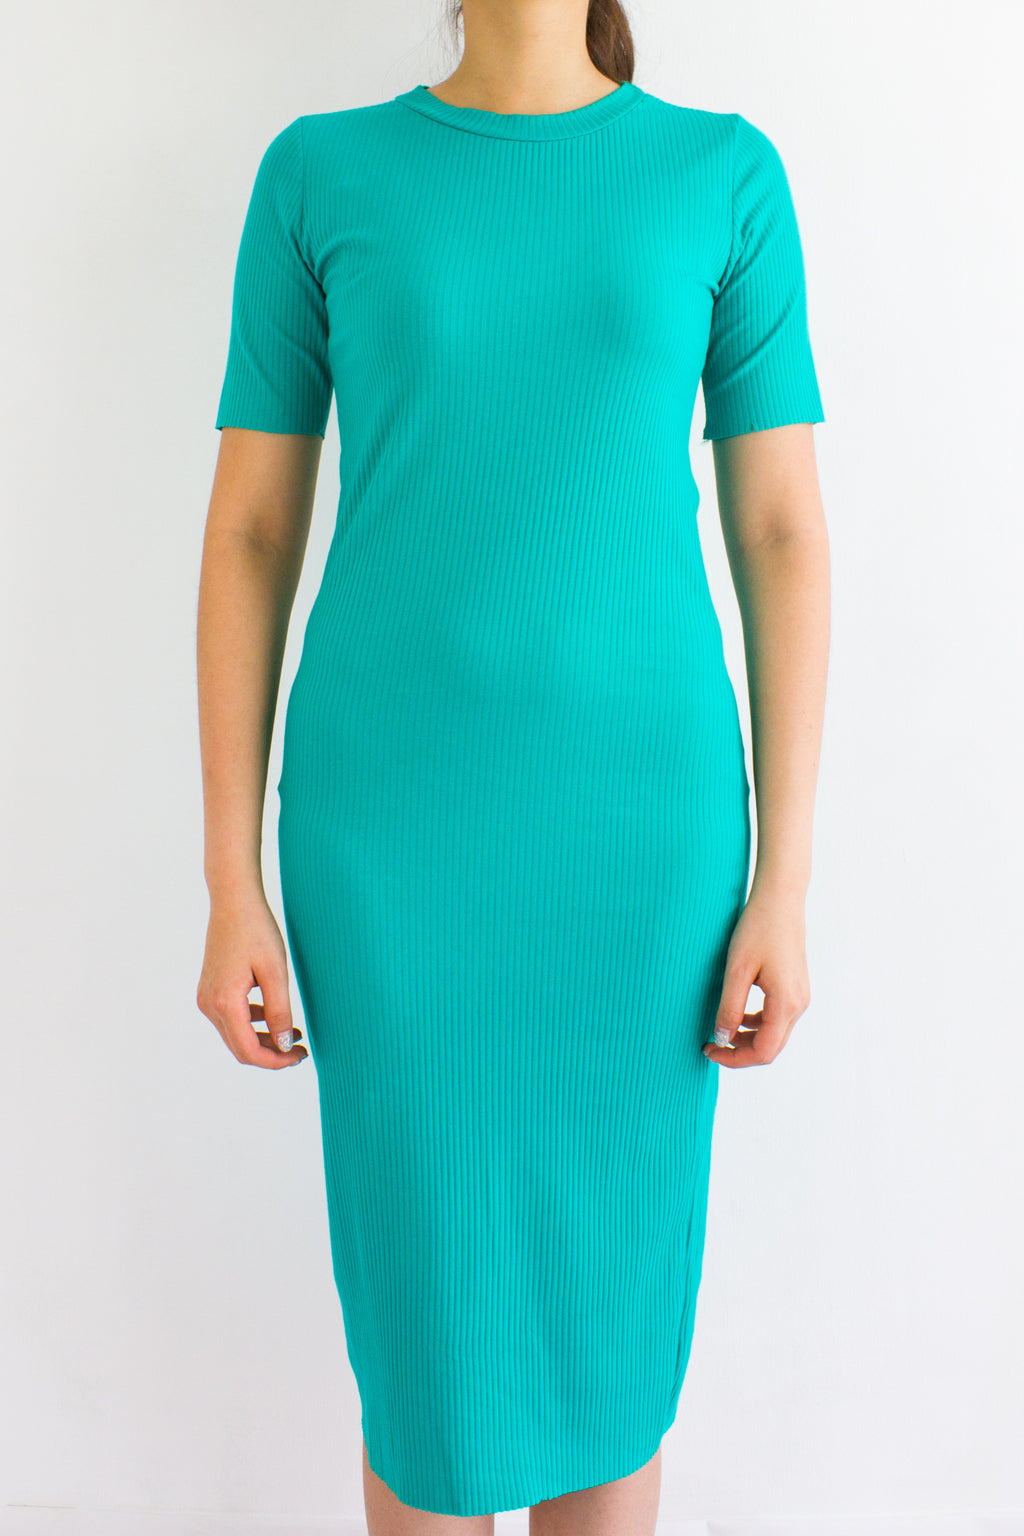 Classic Fitted Ribbed Midi Dress in Turquoise - DRESSES - Peep Boutique